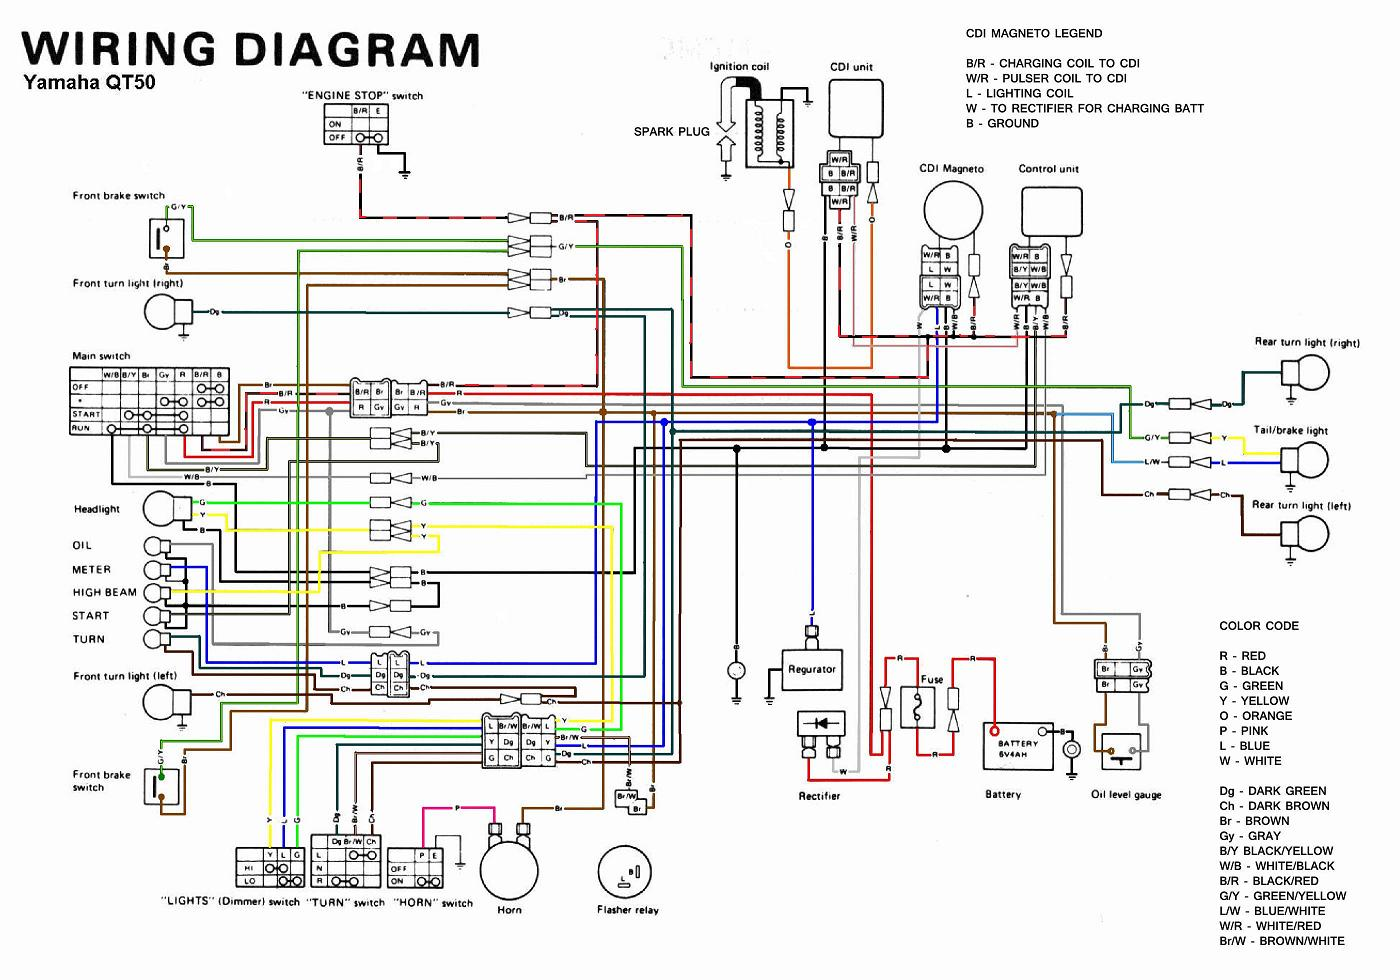 Yamaha QT50 Wiring Diagram yamaha qt50 wiring diagram yamaha qt50 luvin and other nopeds wiring diagram for dummies at cita.asia